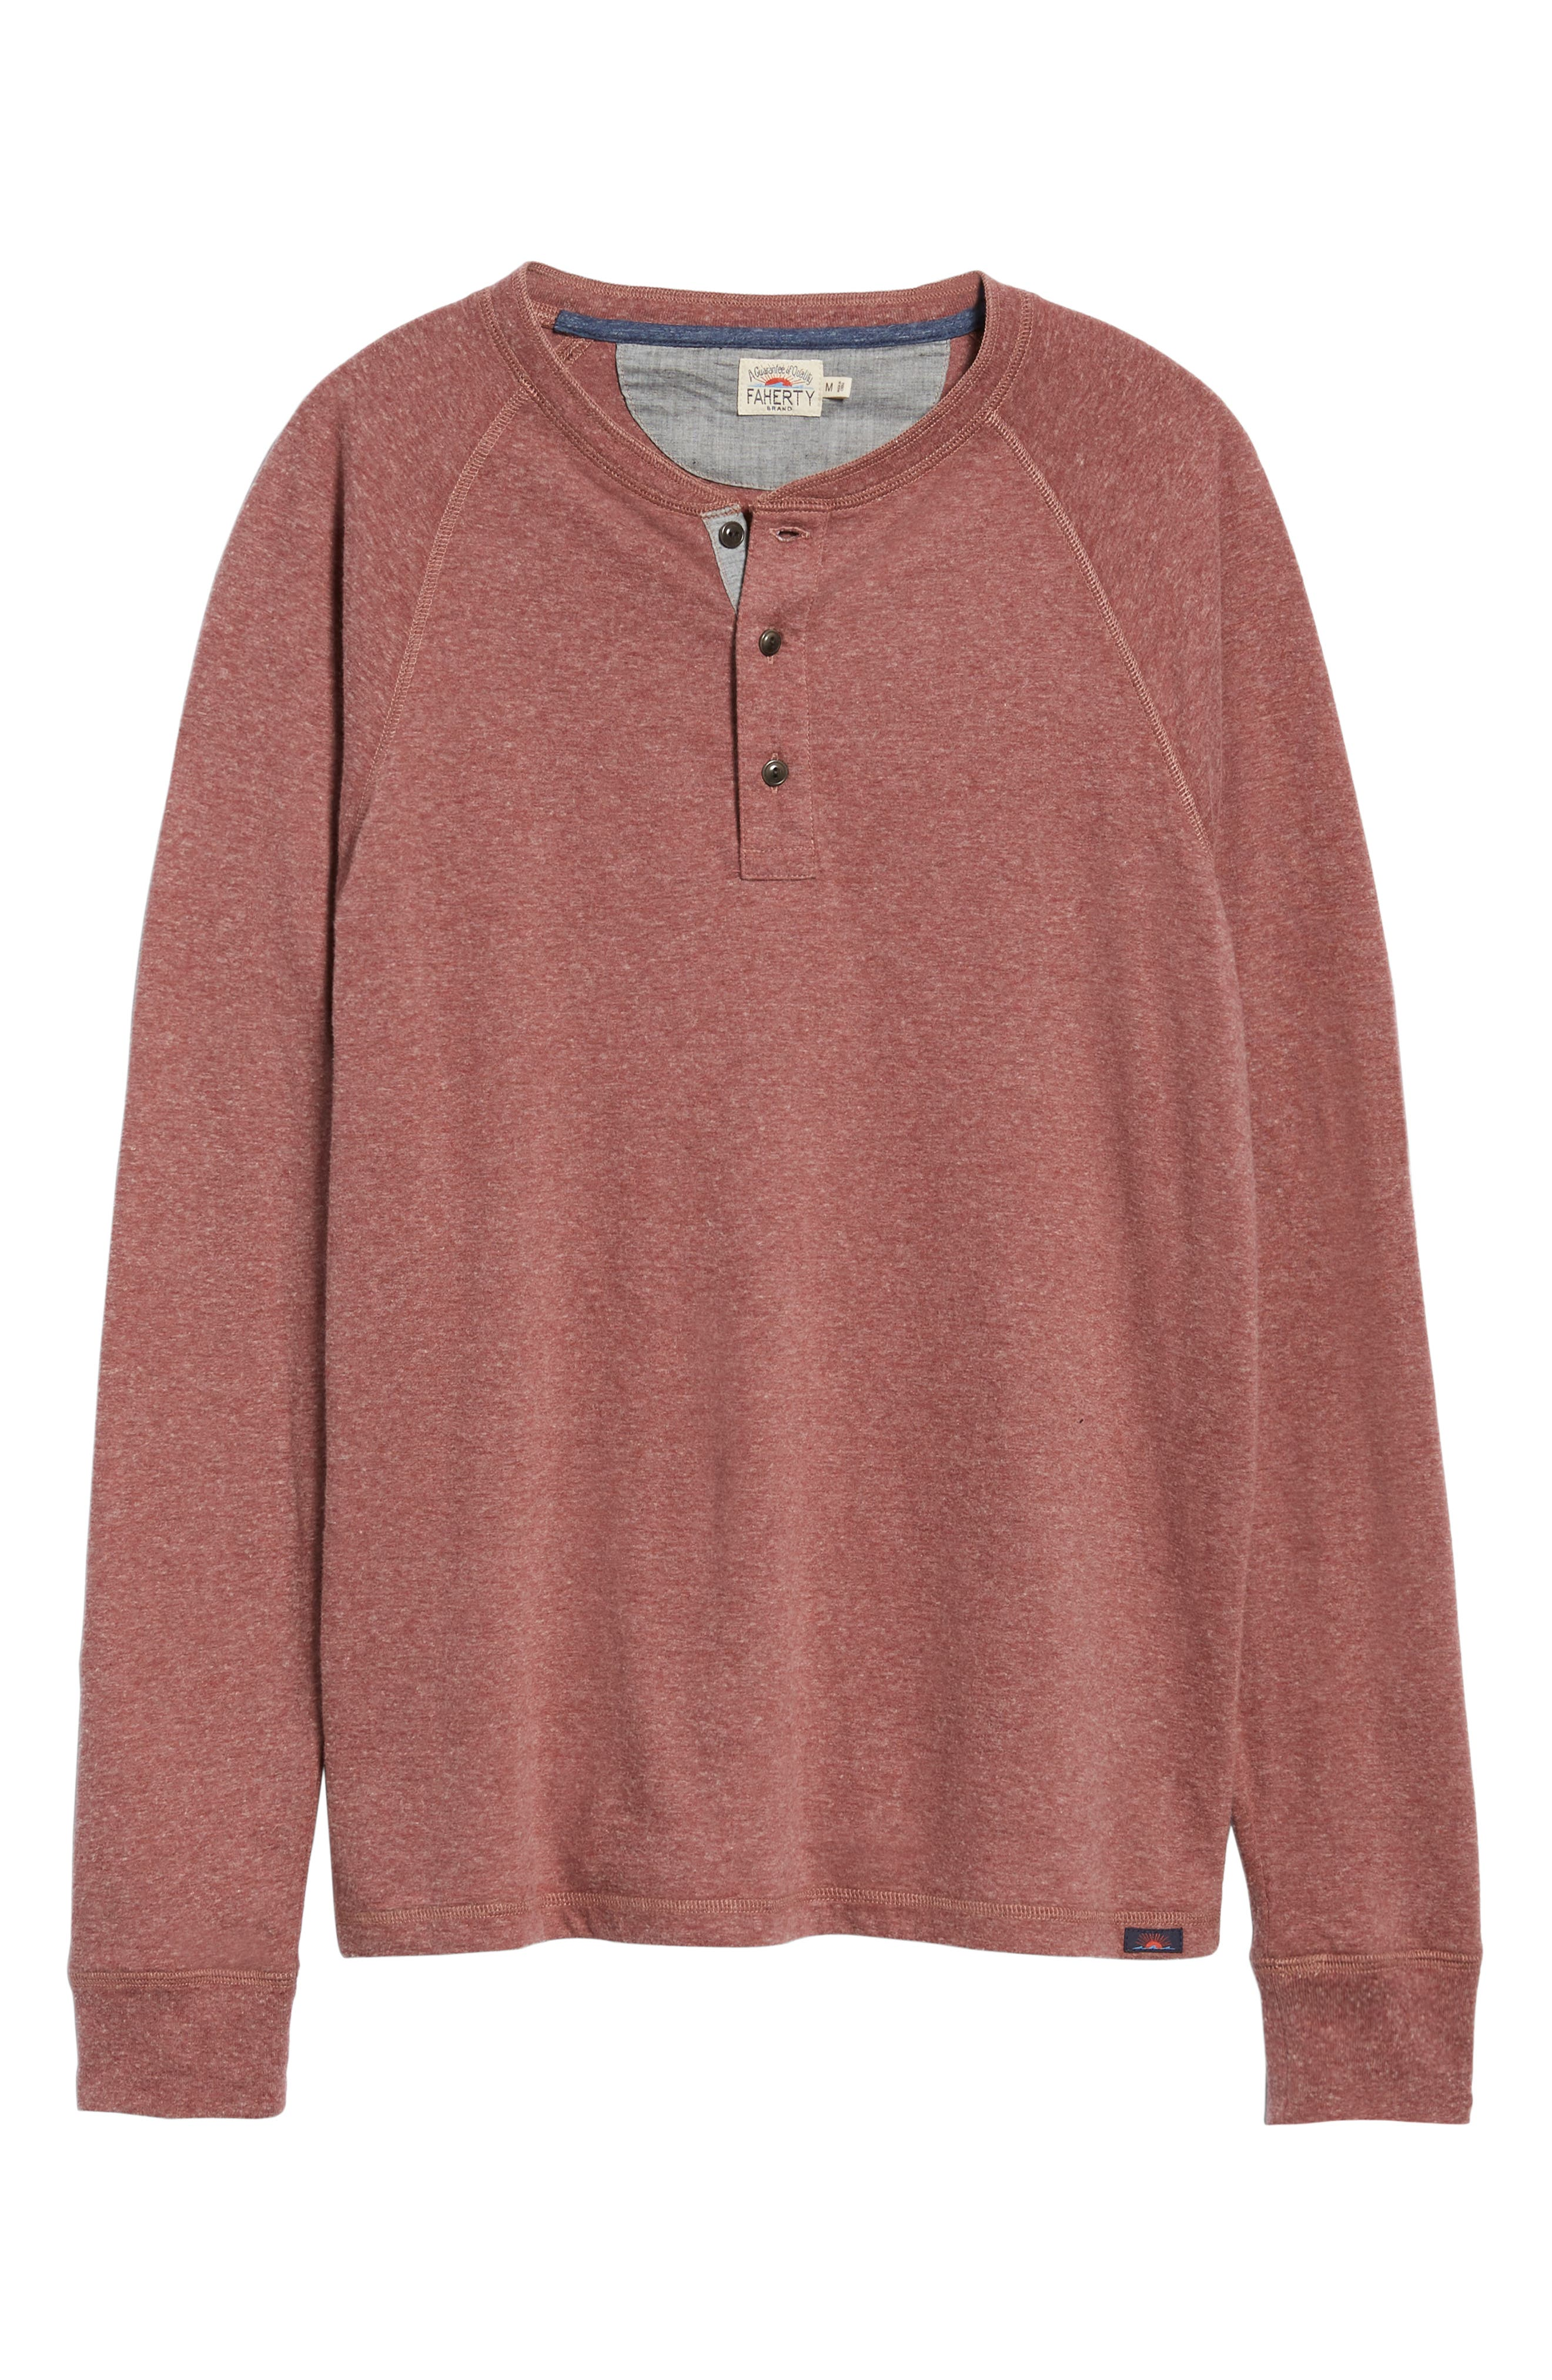 Luxe Heather Knit Organic Cotton Henley,                             Alternate thumbnail 6, color,                             BURGUNDY